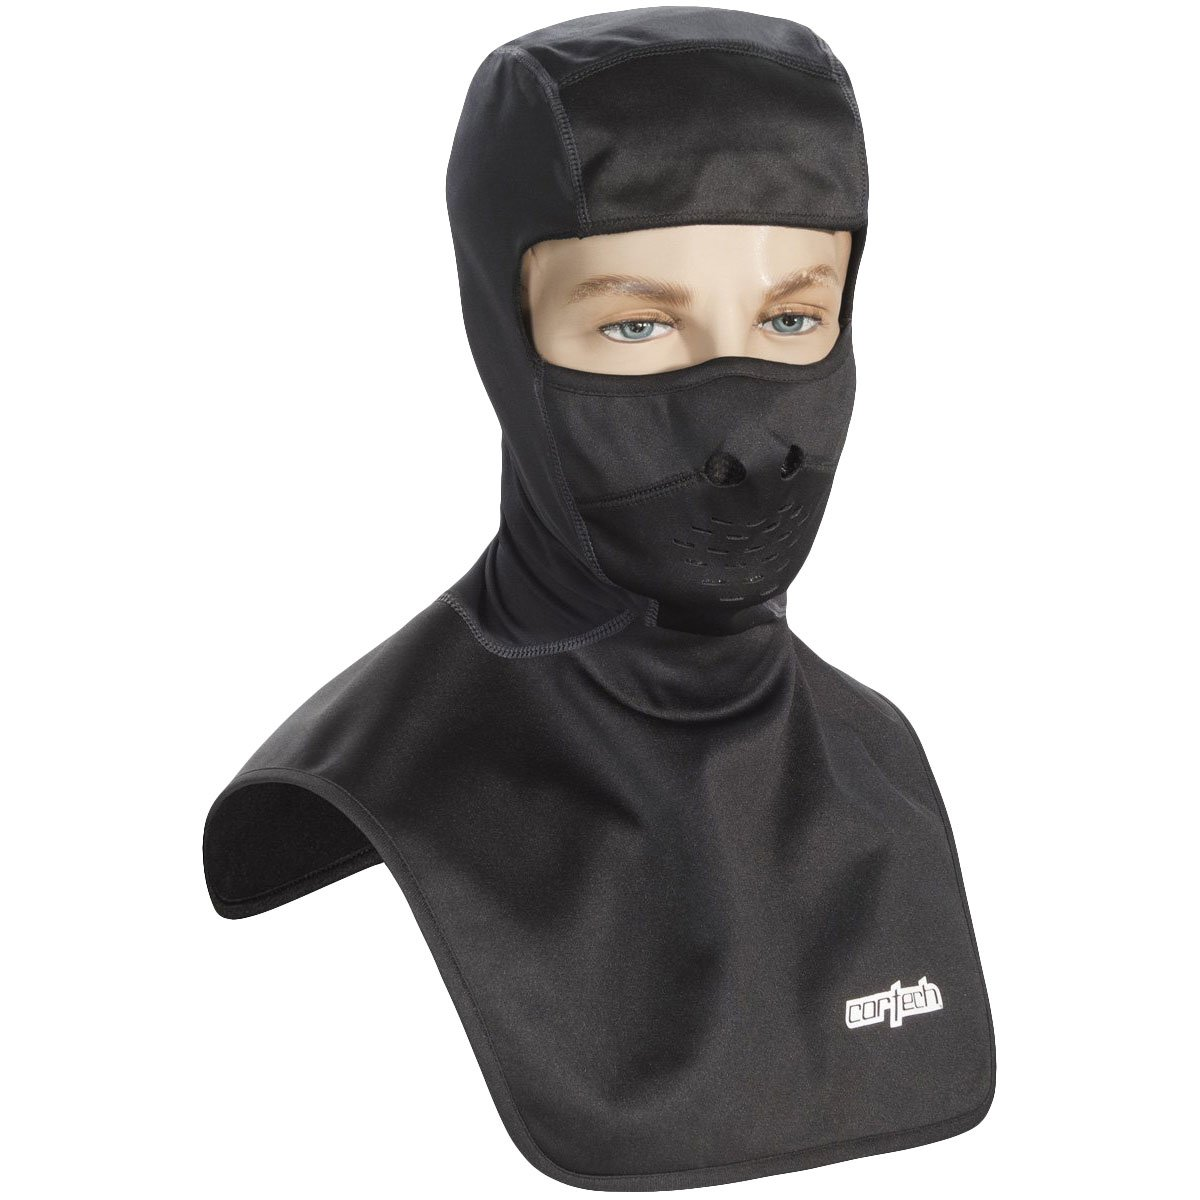 Cortech Journey FC Adult Balaclava Winter Sport Snowmobile Helmet Accessories - Black / One Size Fits Most